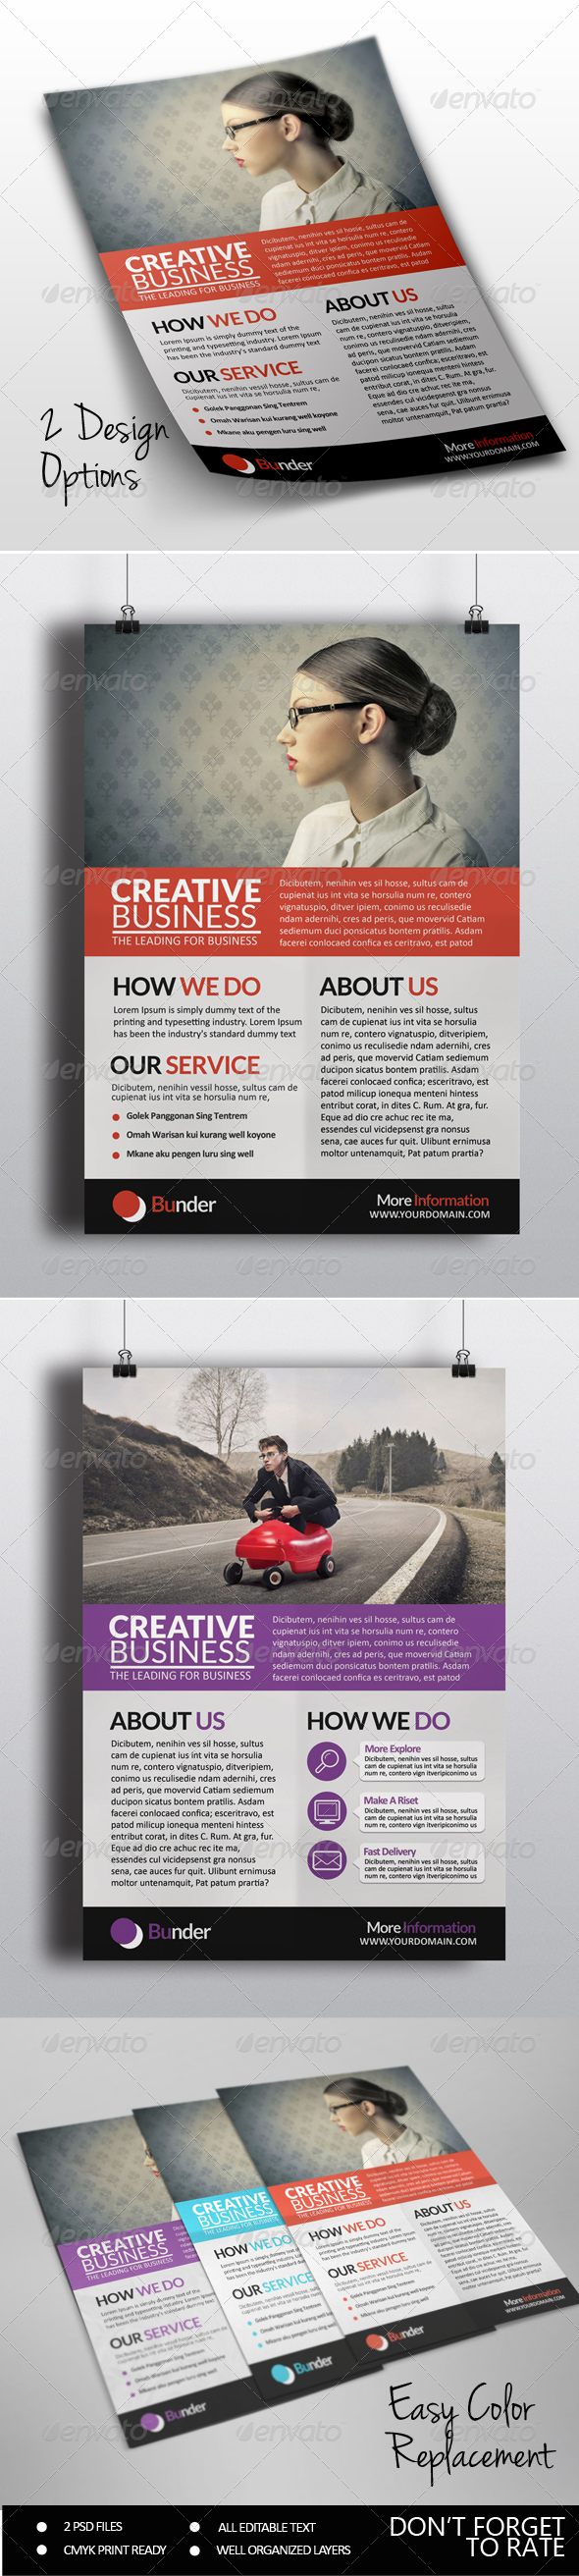 GraphicRiver Creative Business Flyer 7384321